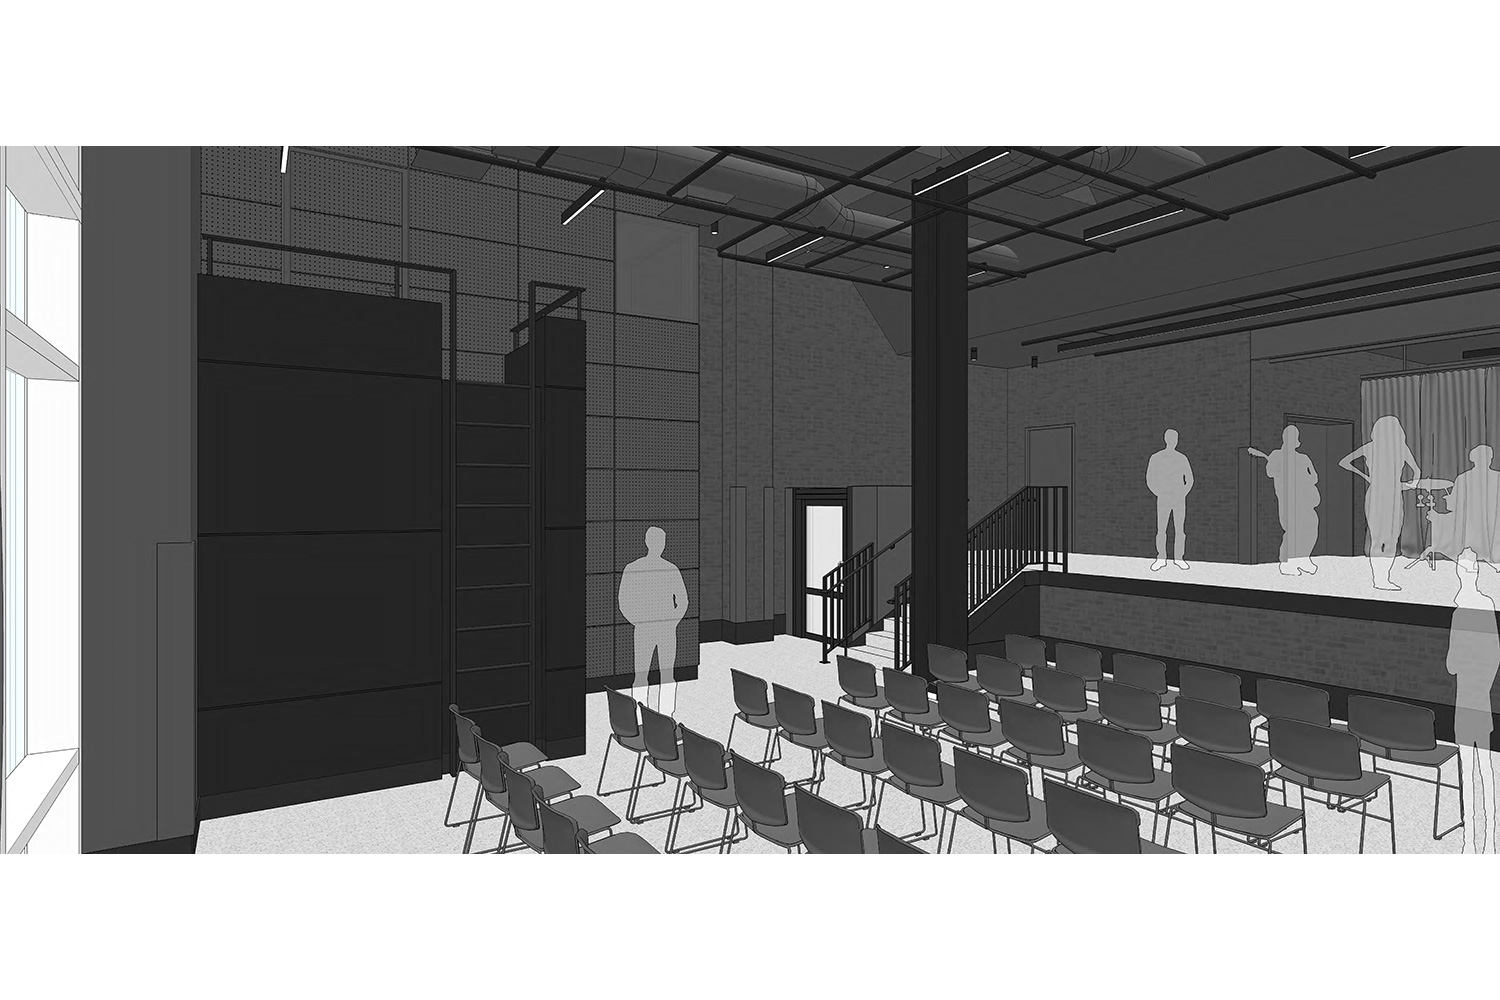 WSDG was engaged to design three key elements for th NYU Jay Street sustainable technology Center. Immersive audio lab, garage media and motion capture lab. Garage common render.